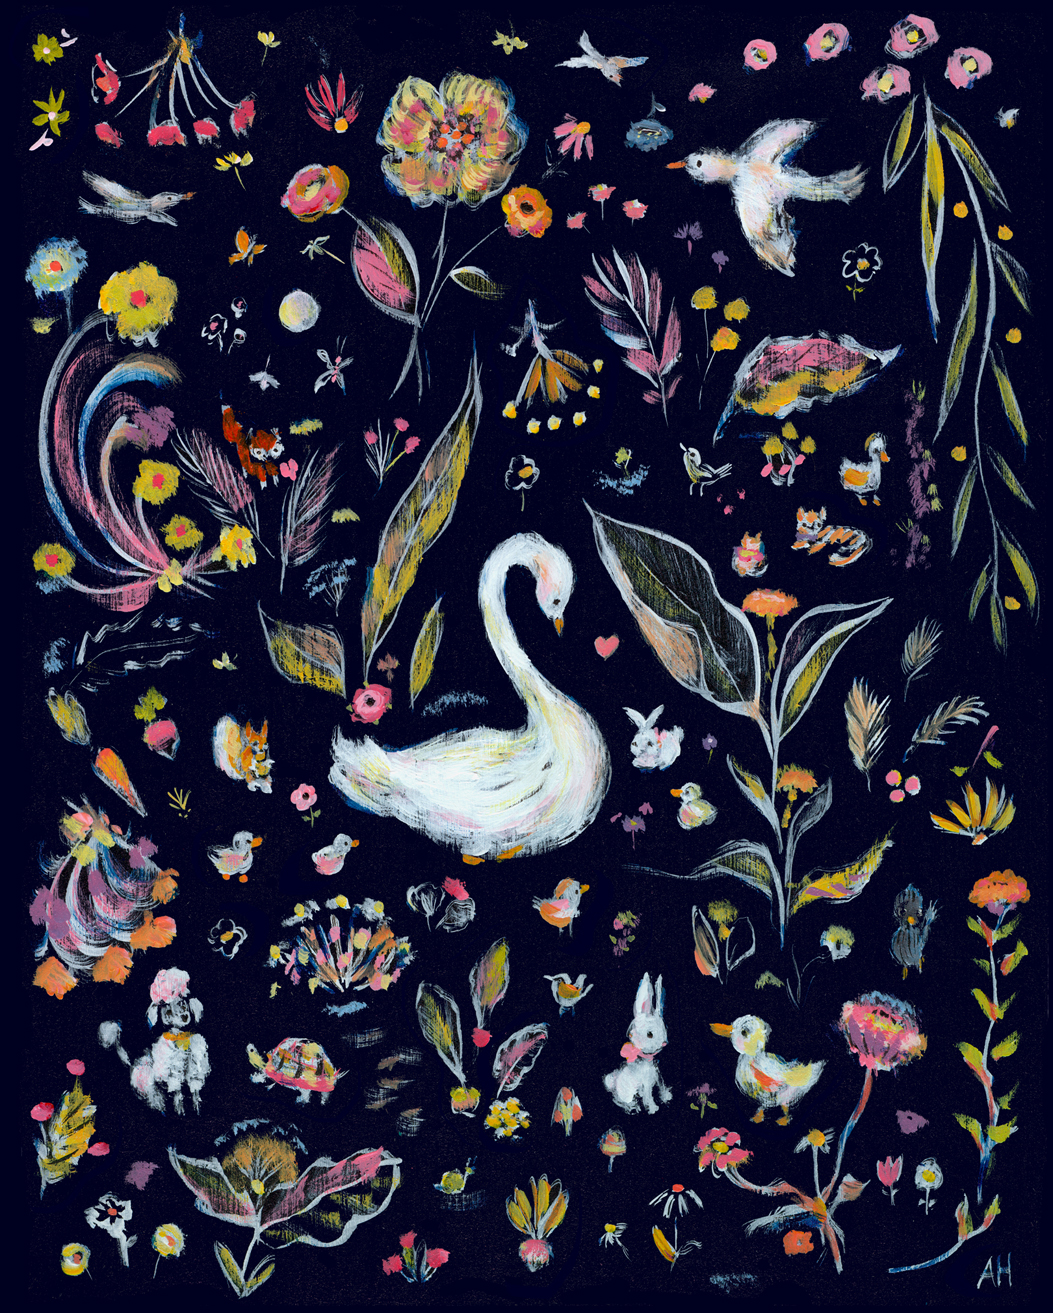 Allyn_Howard_Swan_floral_pattern.jpg